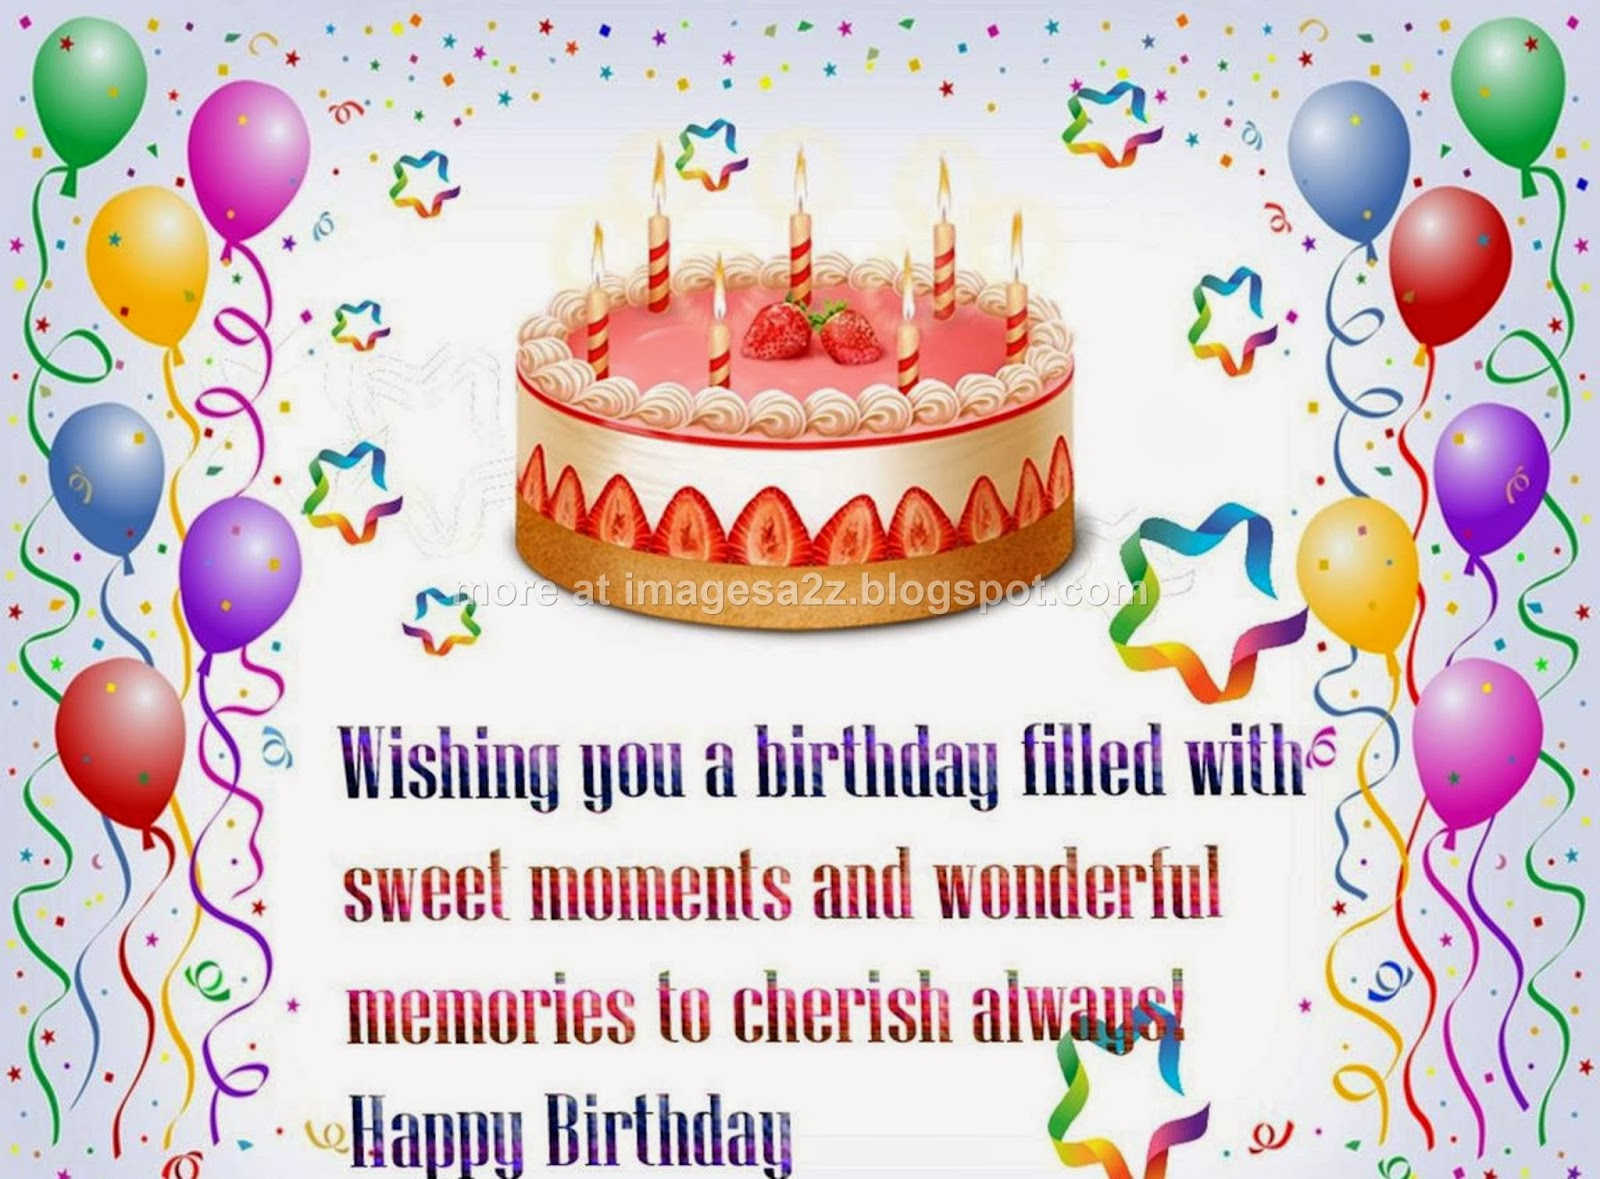 Happy Birthday Wishes For Friend Quotes Cake